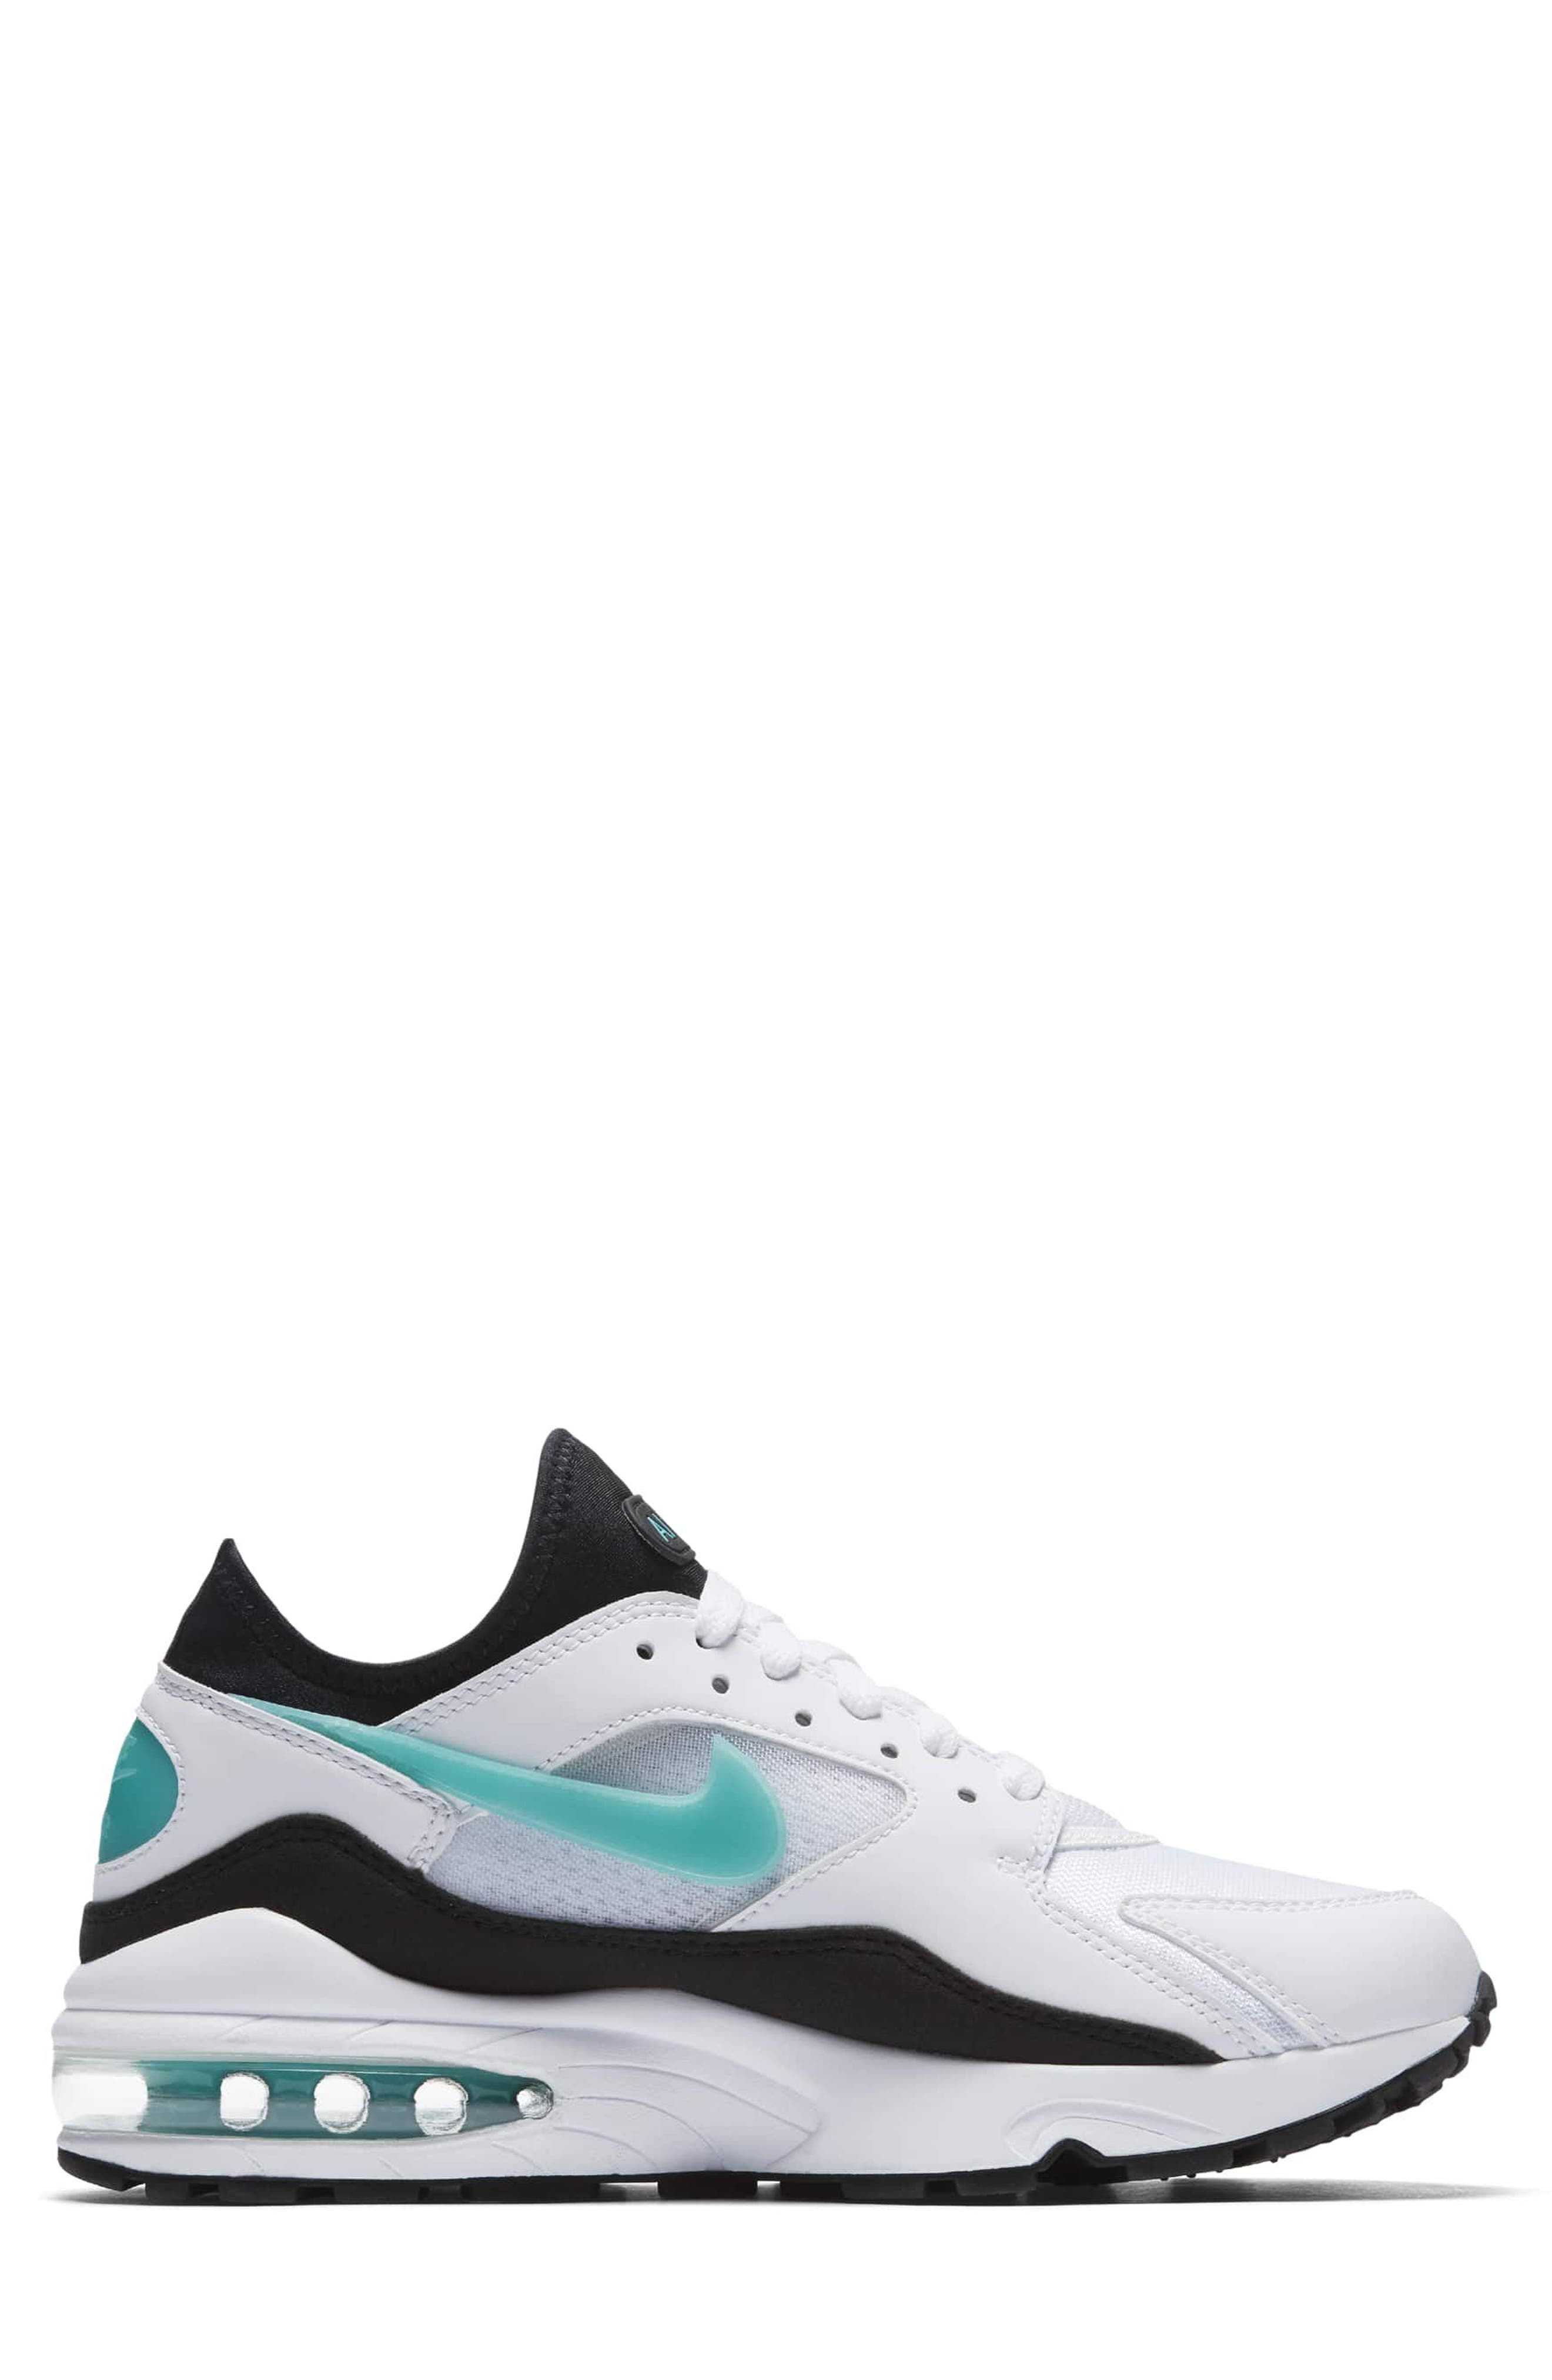 Air Max 93 Sneaker,                             Alternate thumbnail 3, color,                             WHITE/ DUSTY CACTUS